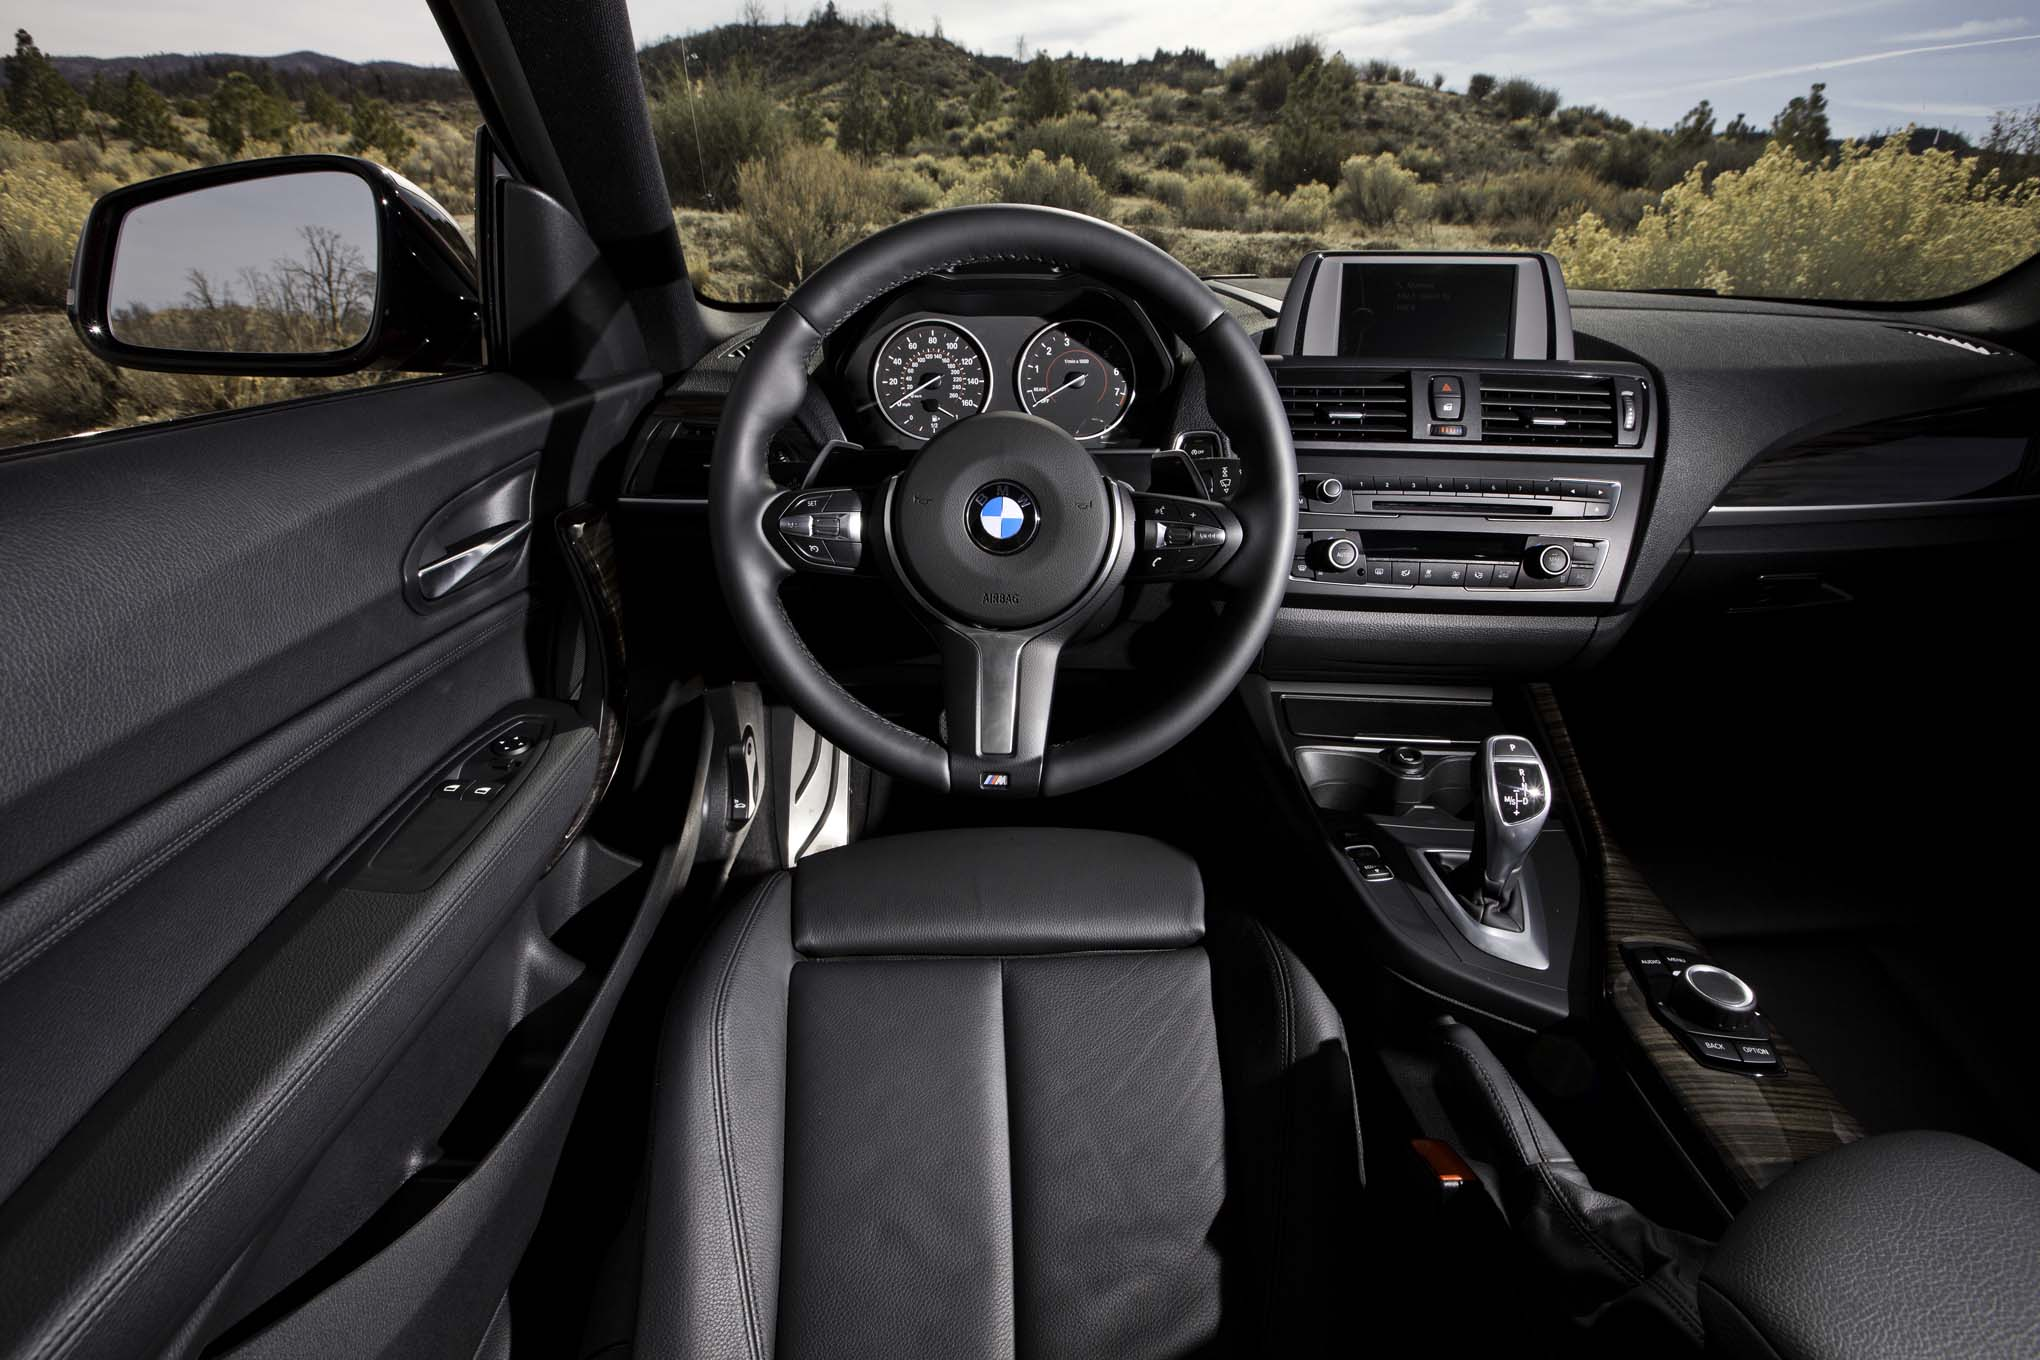 2014 Bmw M235i Dash (Photo 2 of 8)